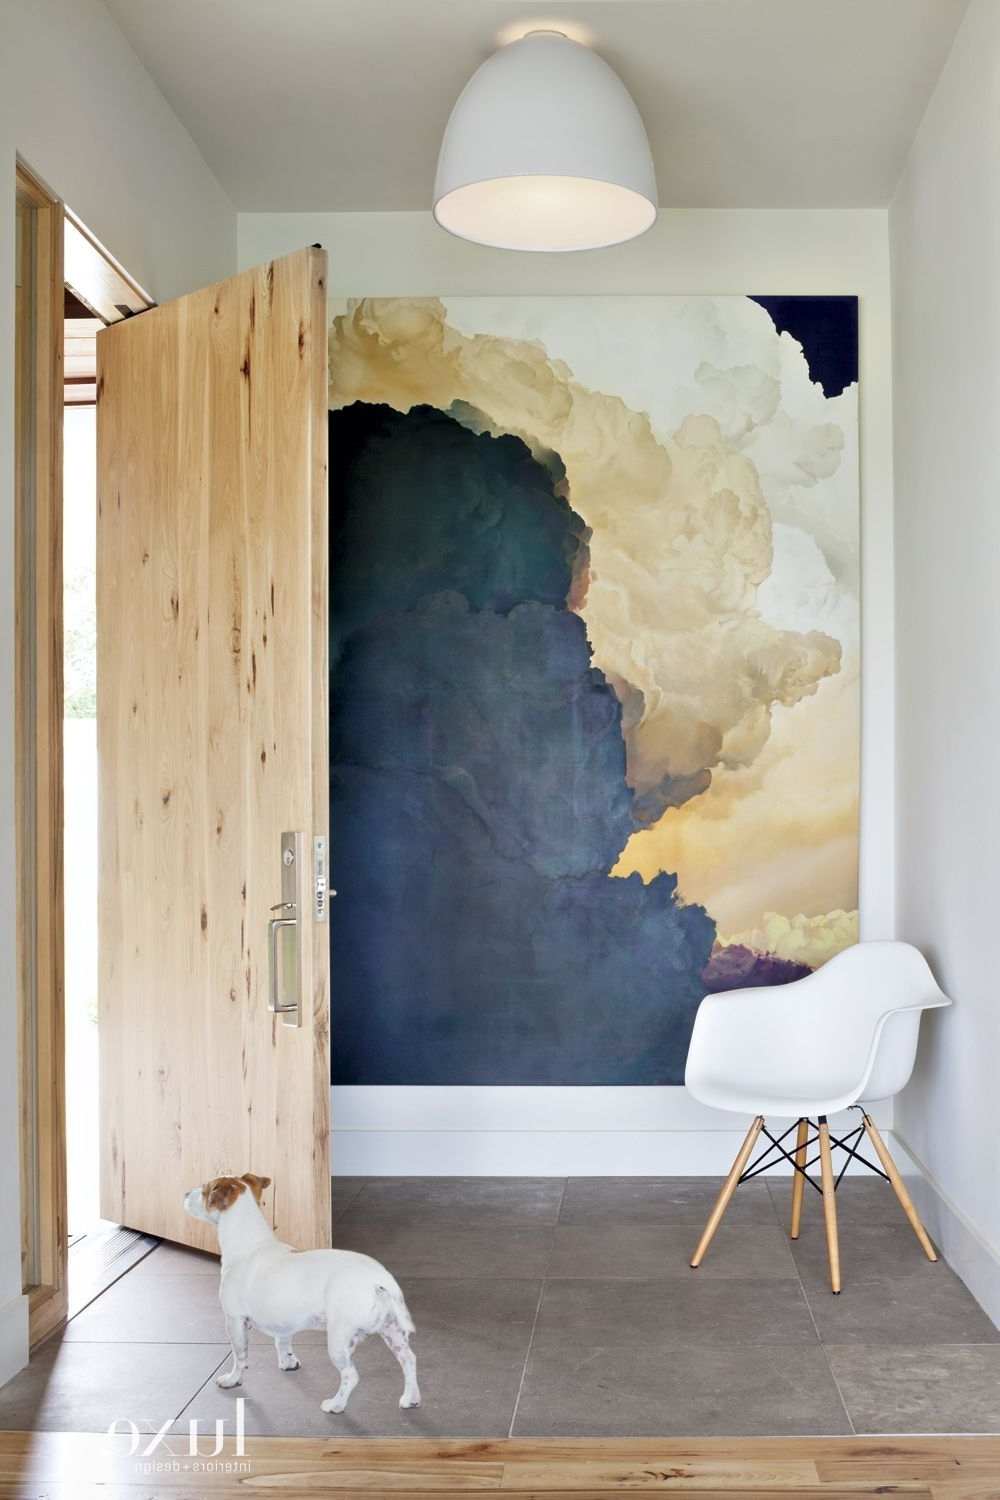 35 Foyers With Statement Art Pieces (Gallery 4 of 15)